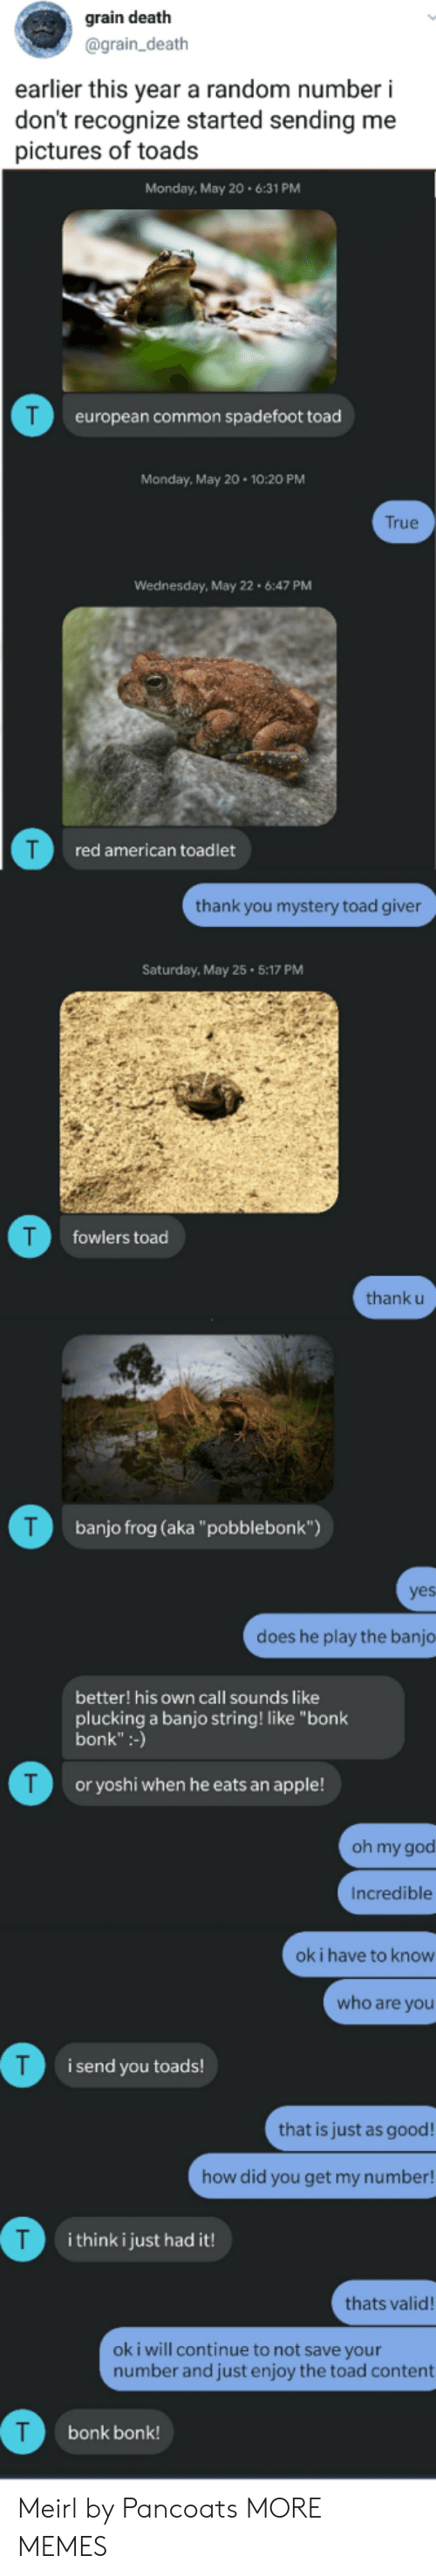 """Apple, Dank, and God: grain death  @grain_death  earlier this year a random number i  don't recognize started sending me  pictures of toads  Monday, May 206:31 PM  european common spadefoot toad  Monday, May 20 10:20 PM  True  Wednesday, May 22 6:47 PM  T  red american toadlet  thank you mystery toad giver  Saturday, May 25 5:17 PM  T  fowlers toad  thank u  T  banjo frog (aka""""pobblebonk"""")  yes  does he play the banjo  better! his own call sounds like  plucking a banjo string! like """"bonk  bonk:-)  T  or yoshi when he eats an apple!  oh my god  Incredible  ok i have to know  who are you  i send you toads!  that is just as good!  how did you get my number!  i think i just had it!  thats valid!  ok i will continue to not save your  number and just enjoy the toad content  bonk bonk! Meirl by Pancoats MORE MEMES"""